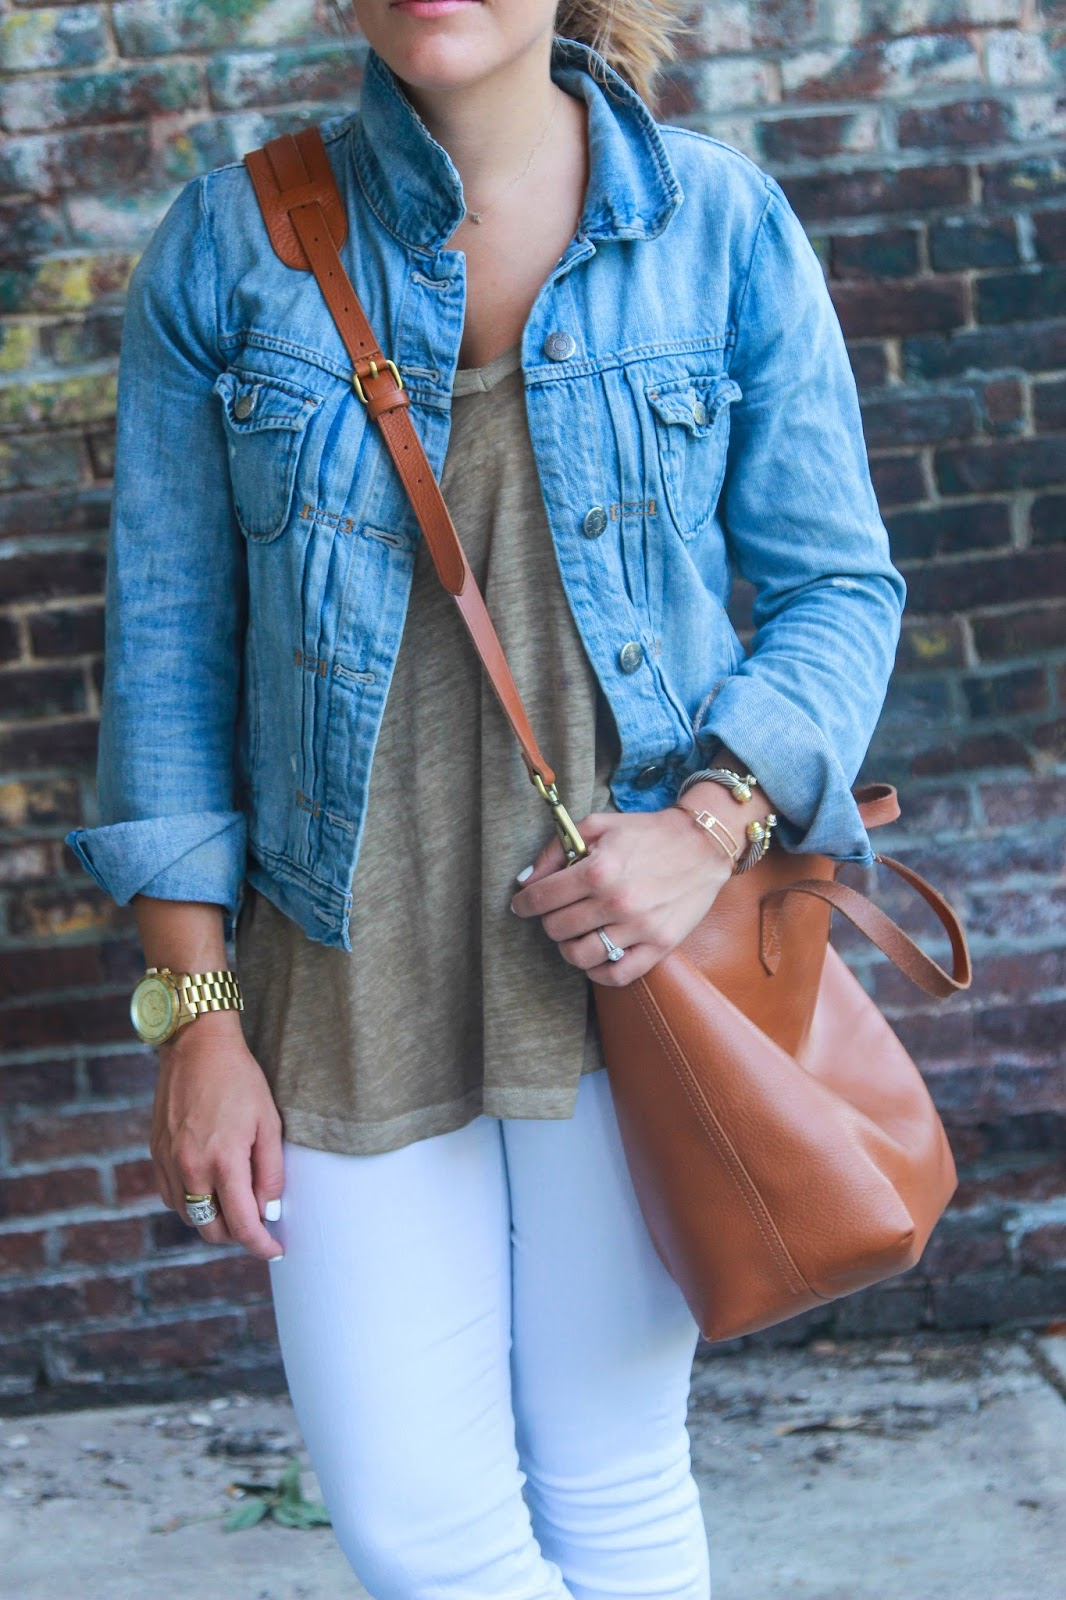 Shelby Skaggs of Glitter & Gingham, Travel Outfit, White Jeans